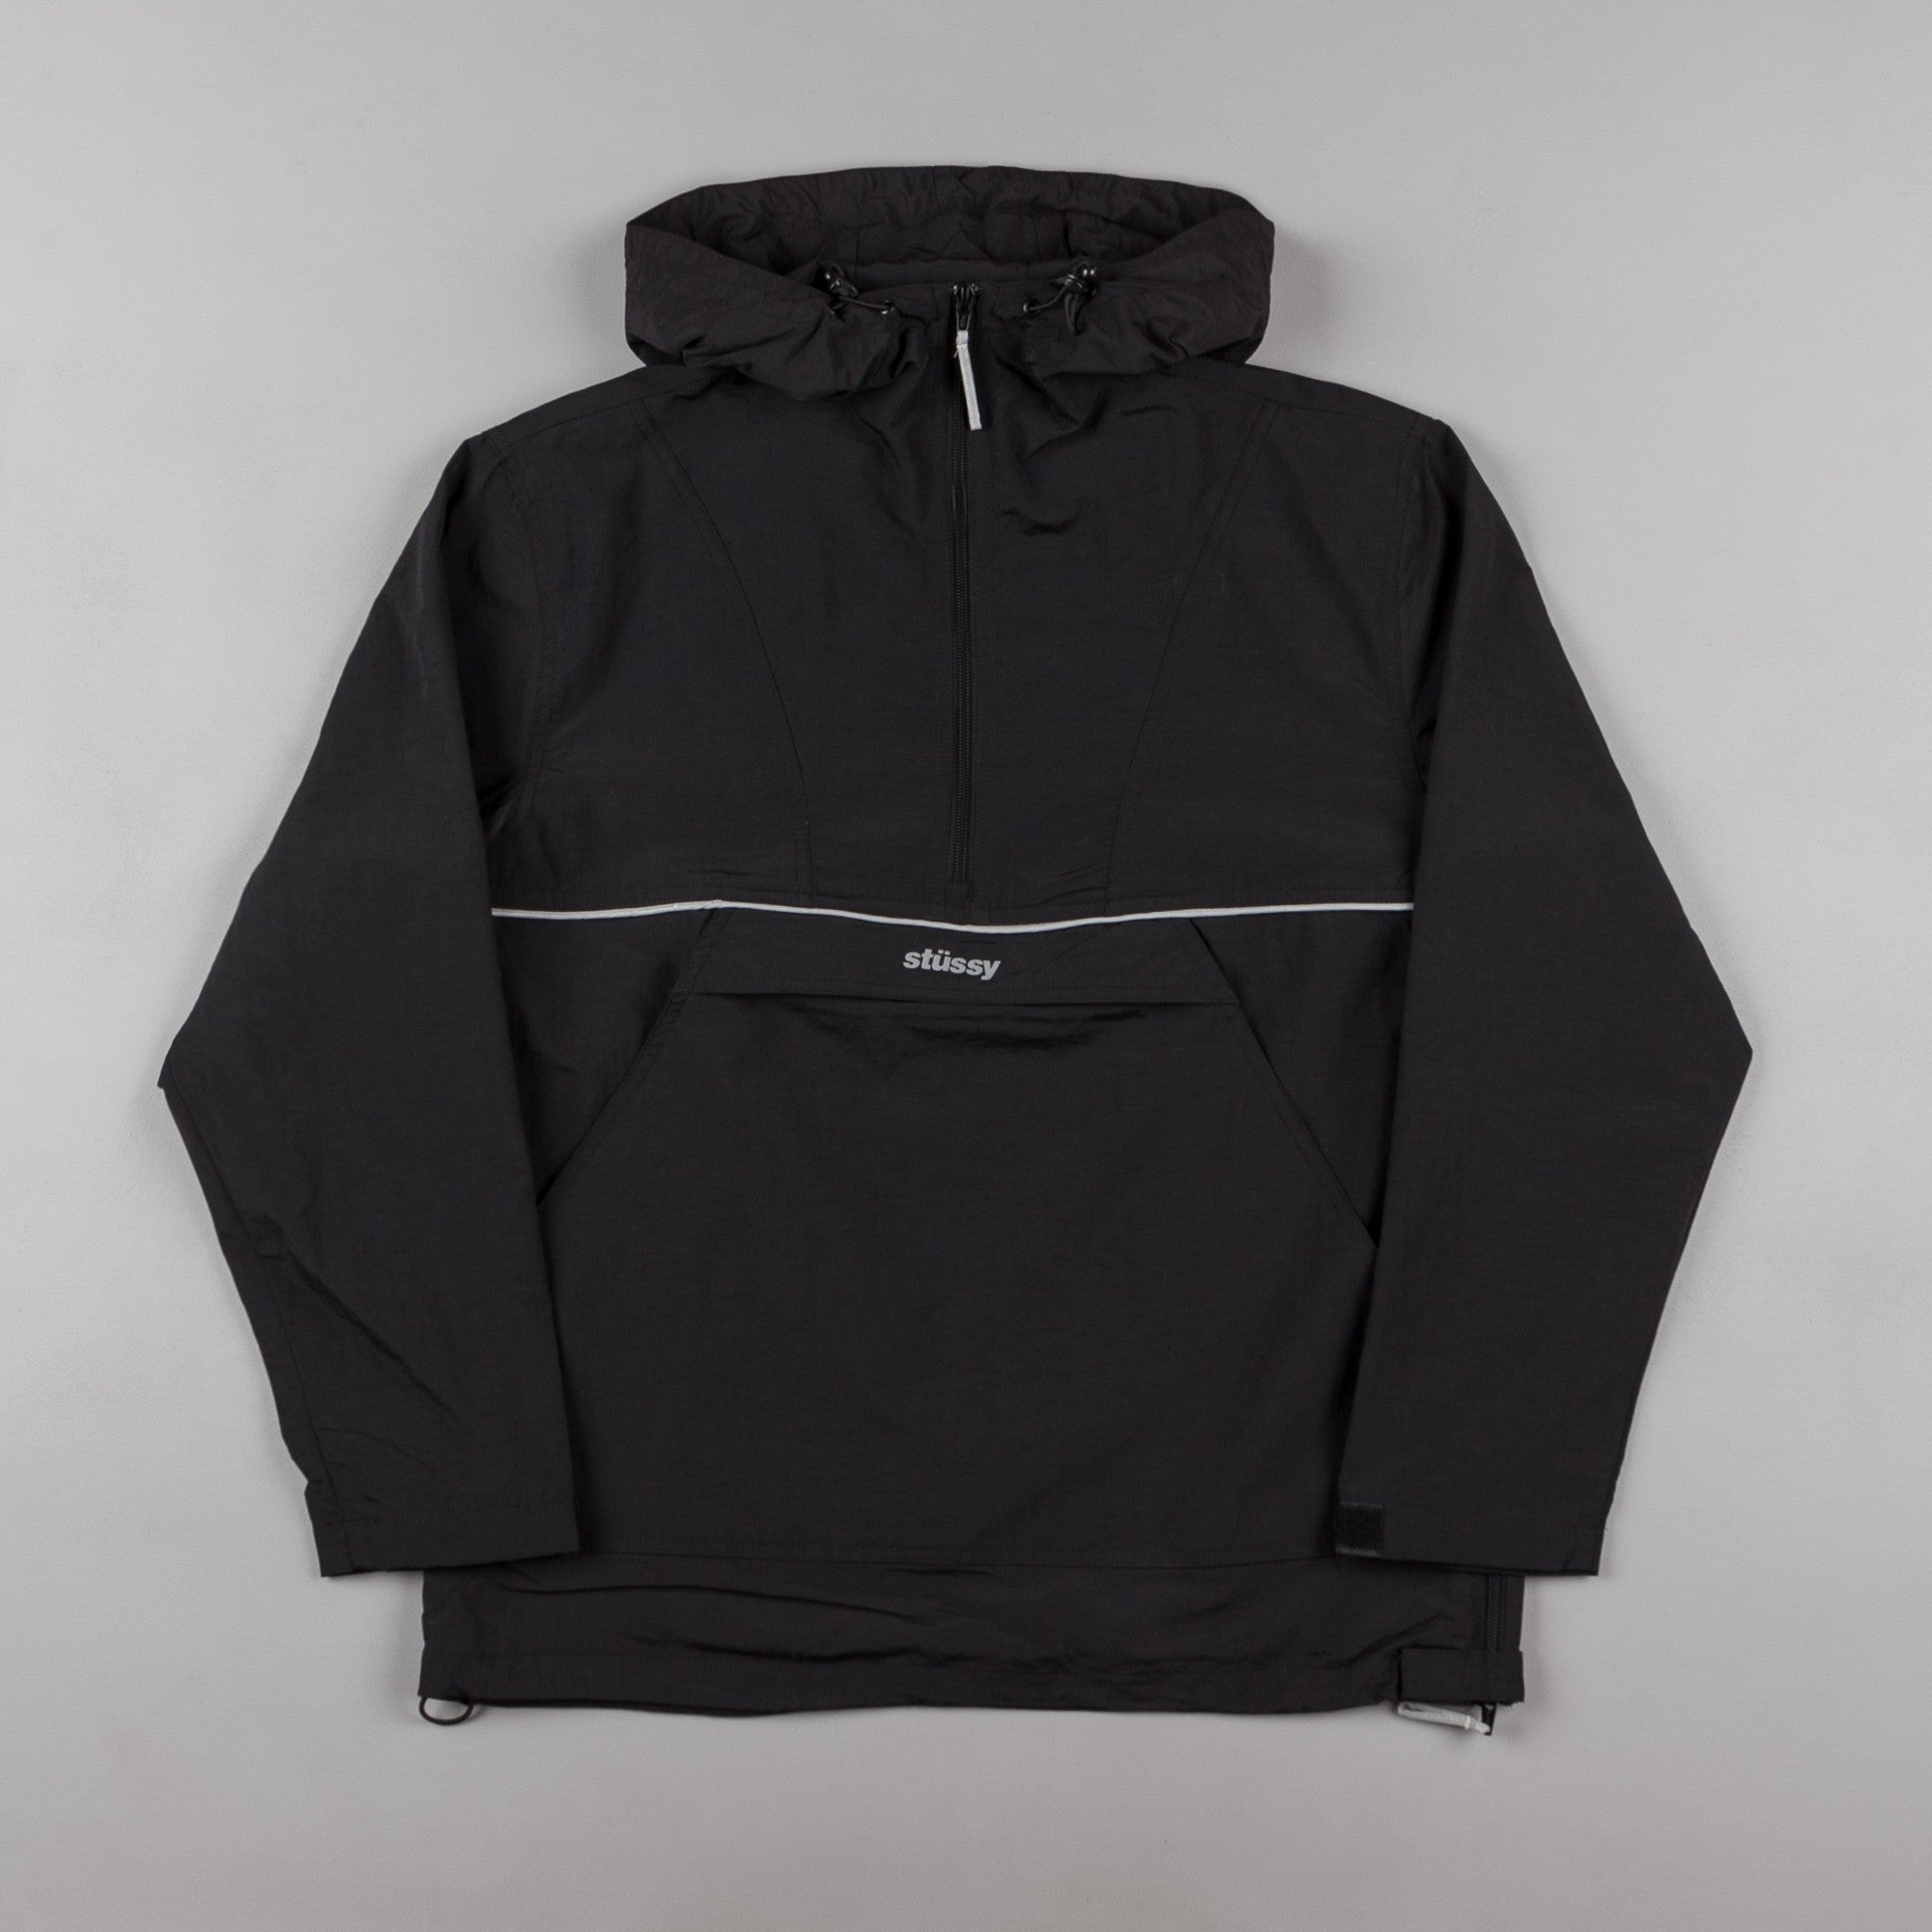 Stussy Reflective Sports Pullover Jacket - Black